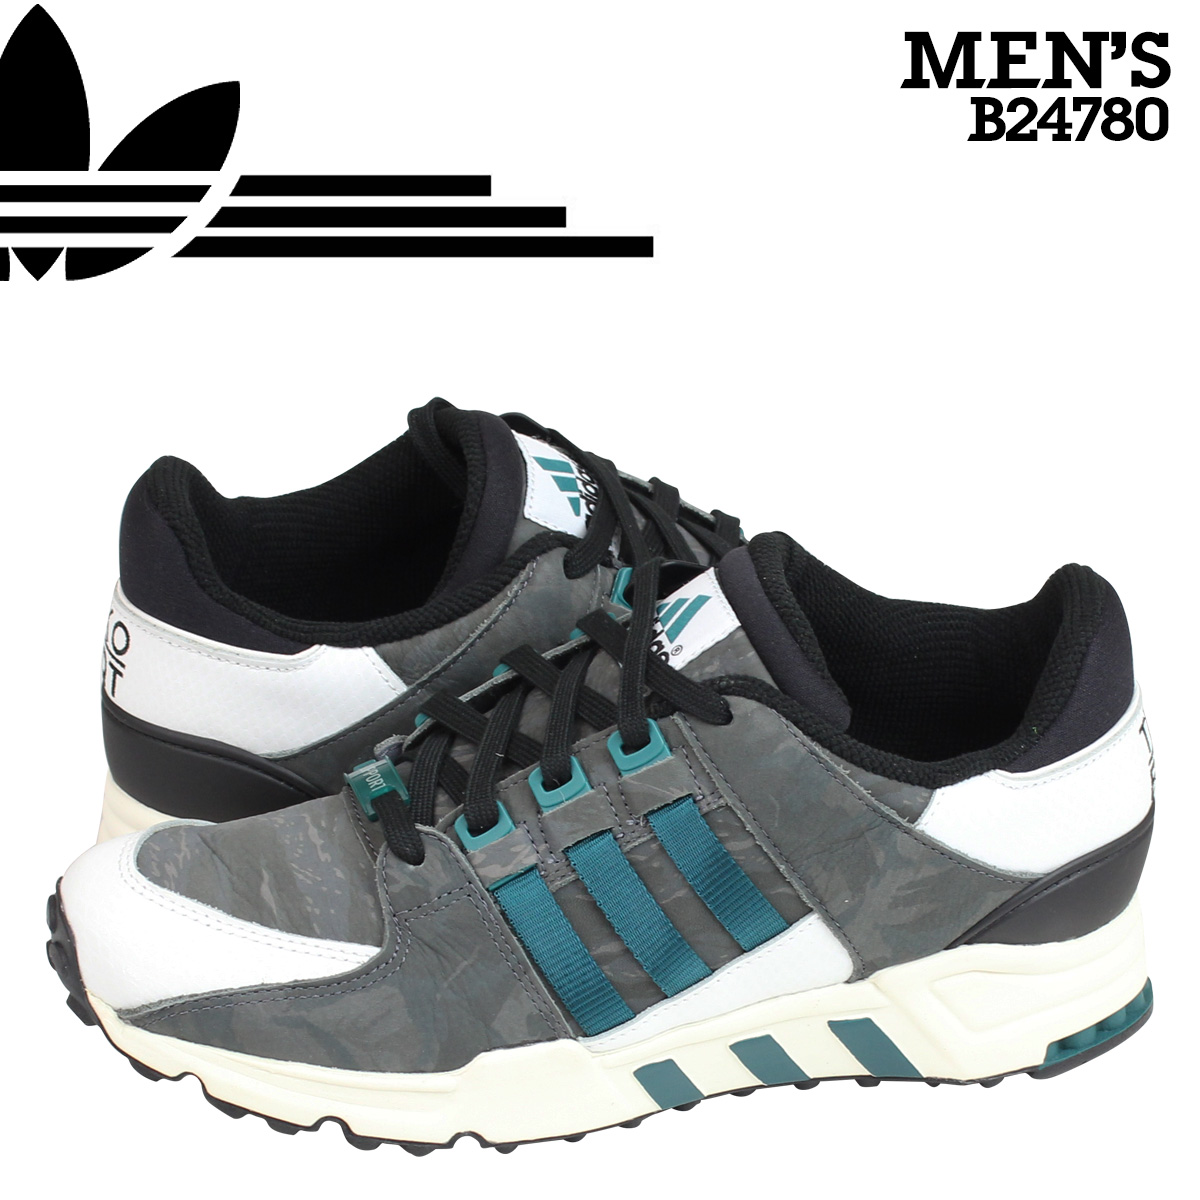 sneakers for cheap 45b41 1e7c4 Adidas originals adidas Originals mens EQT RUNNING SUPPORT 93 sneakers  equipment running support B24780 green grey [10/16 new in stock]